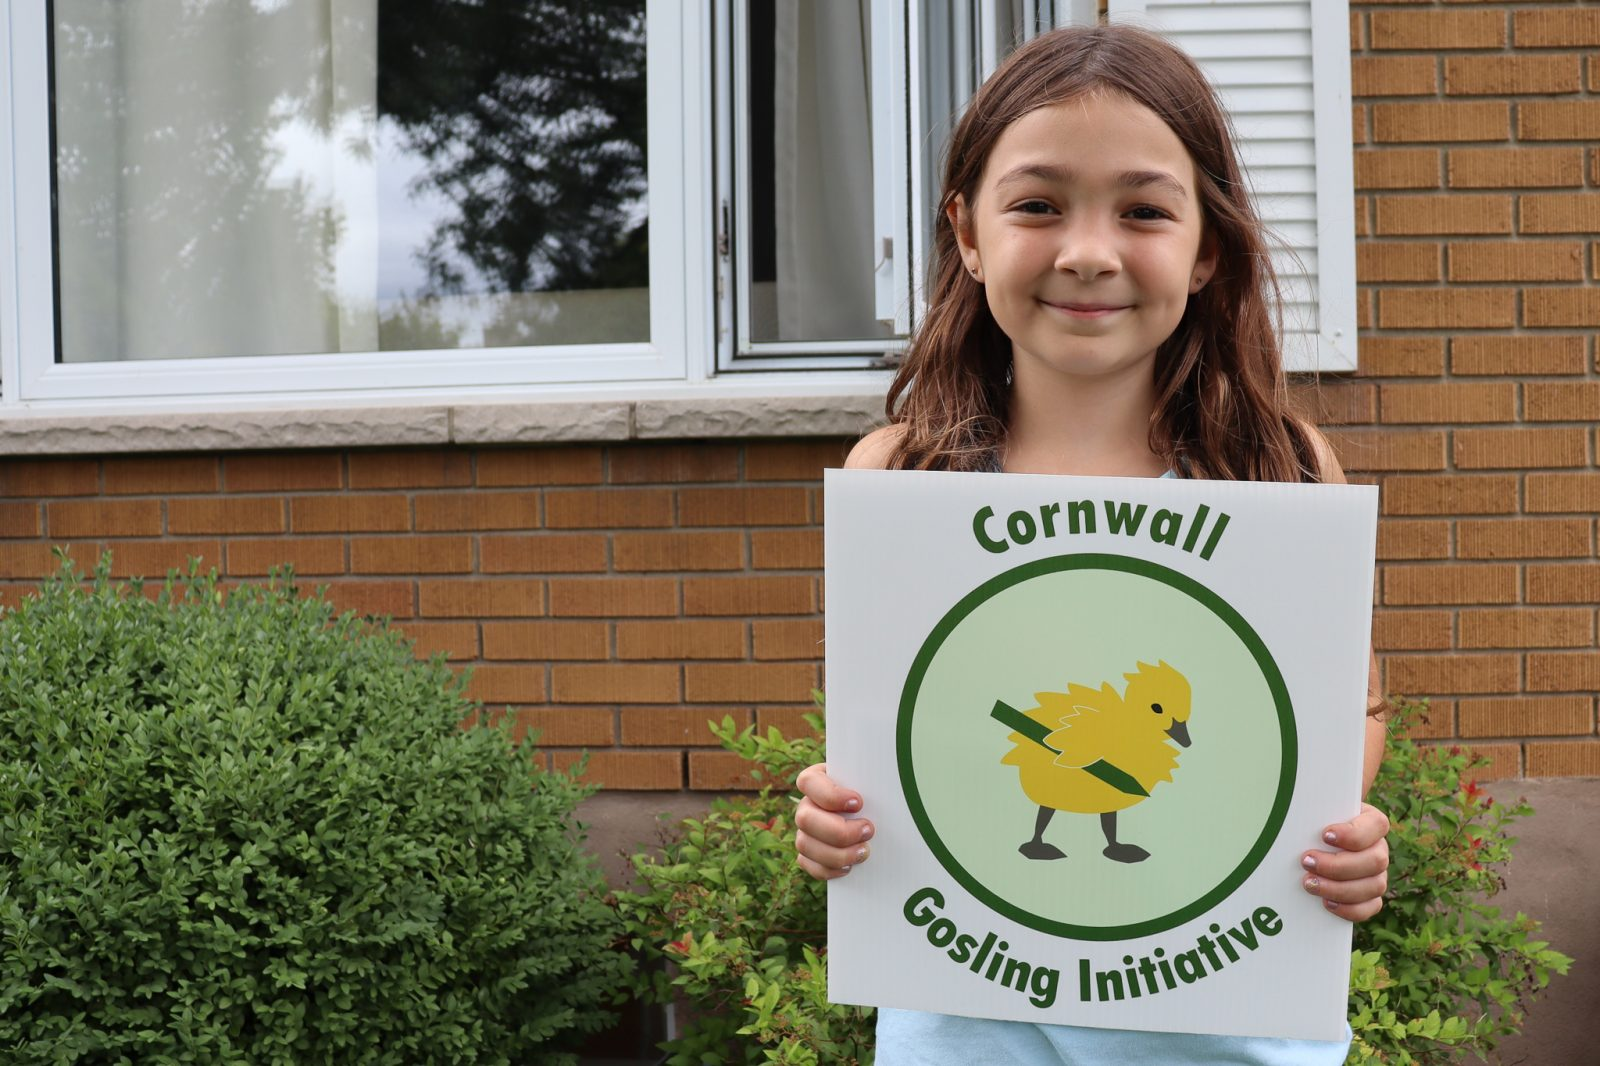 Goslings Initiative Summer Reading Challenge wraps up